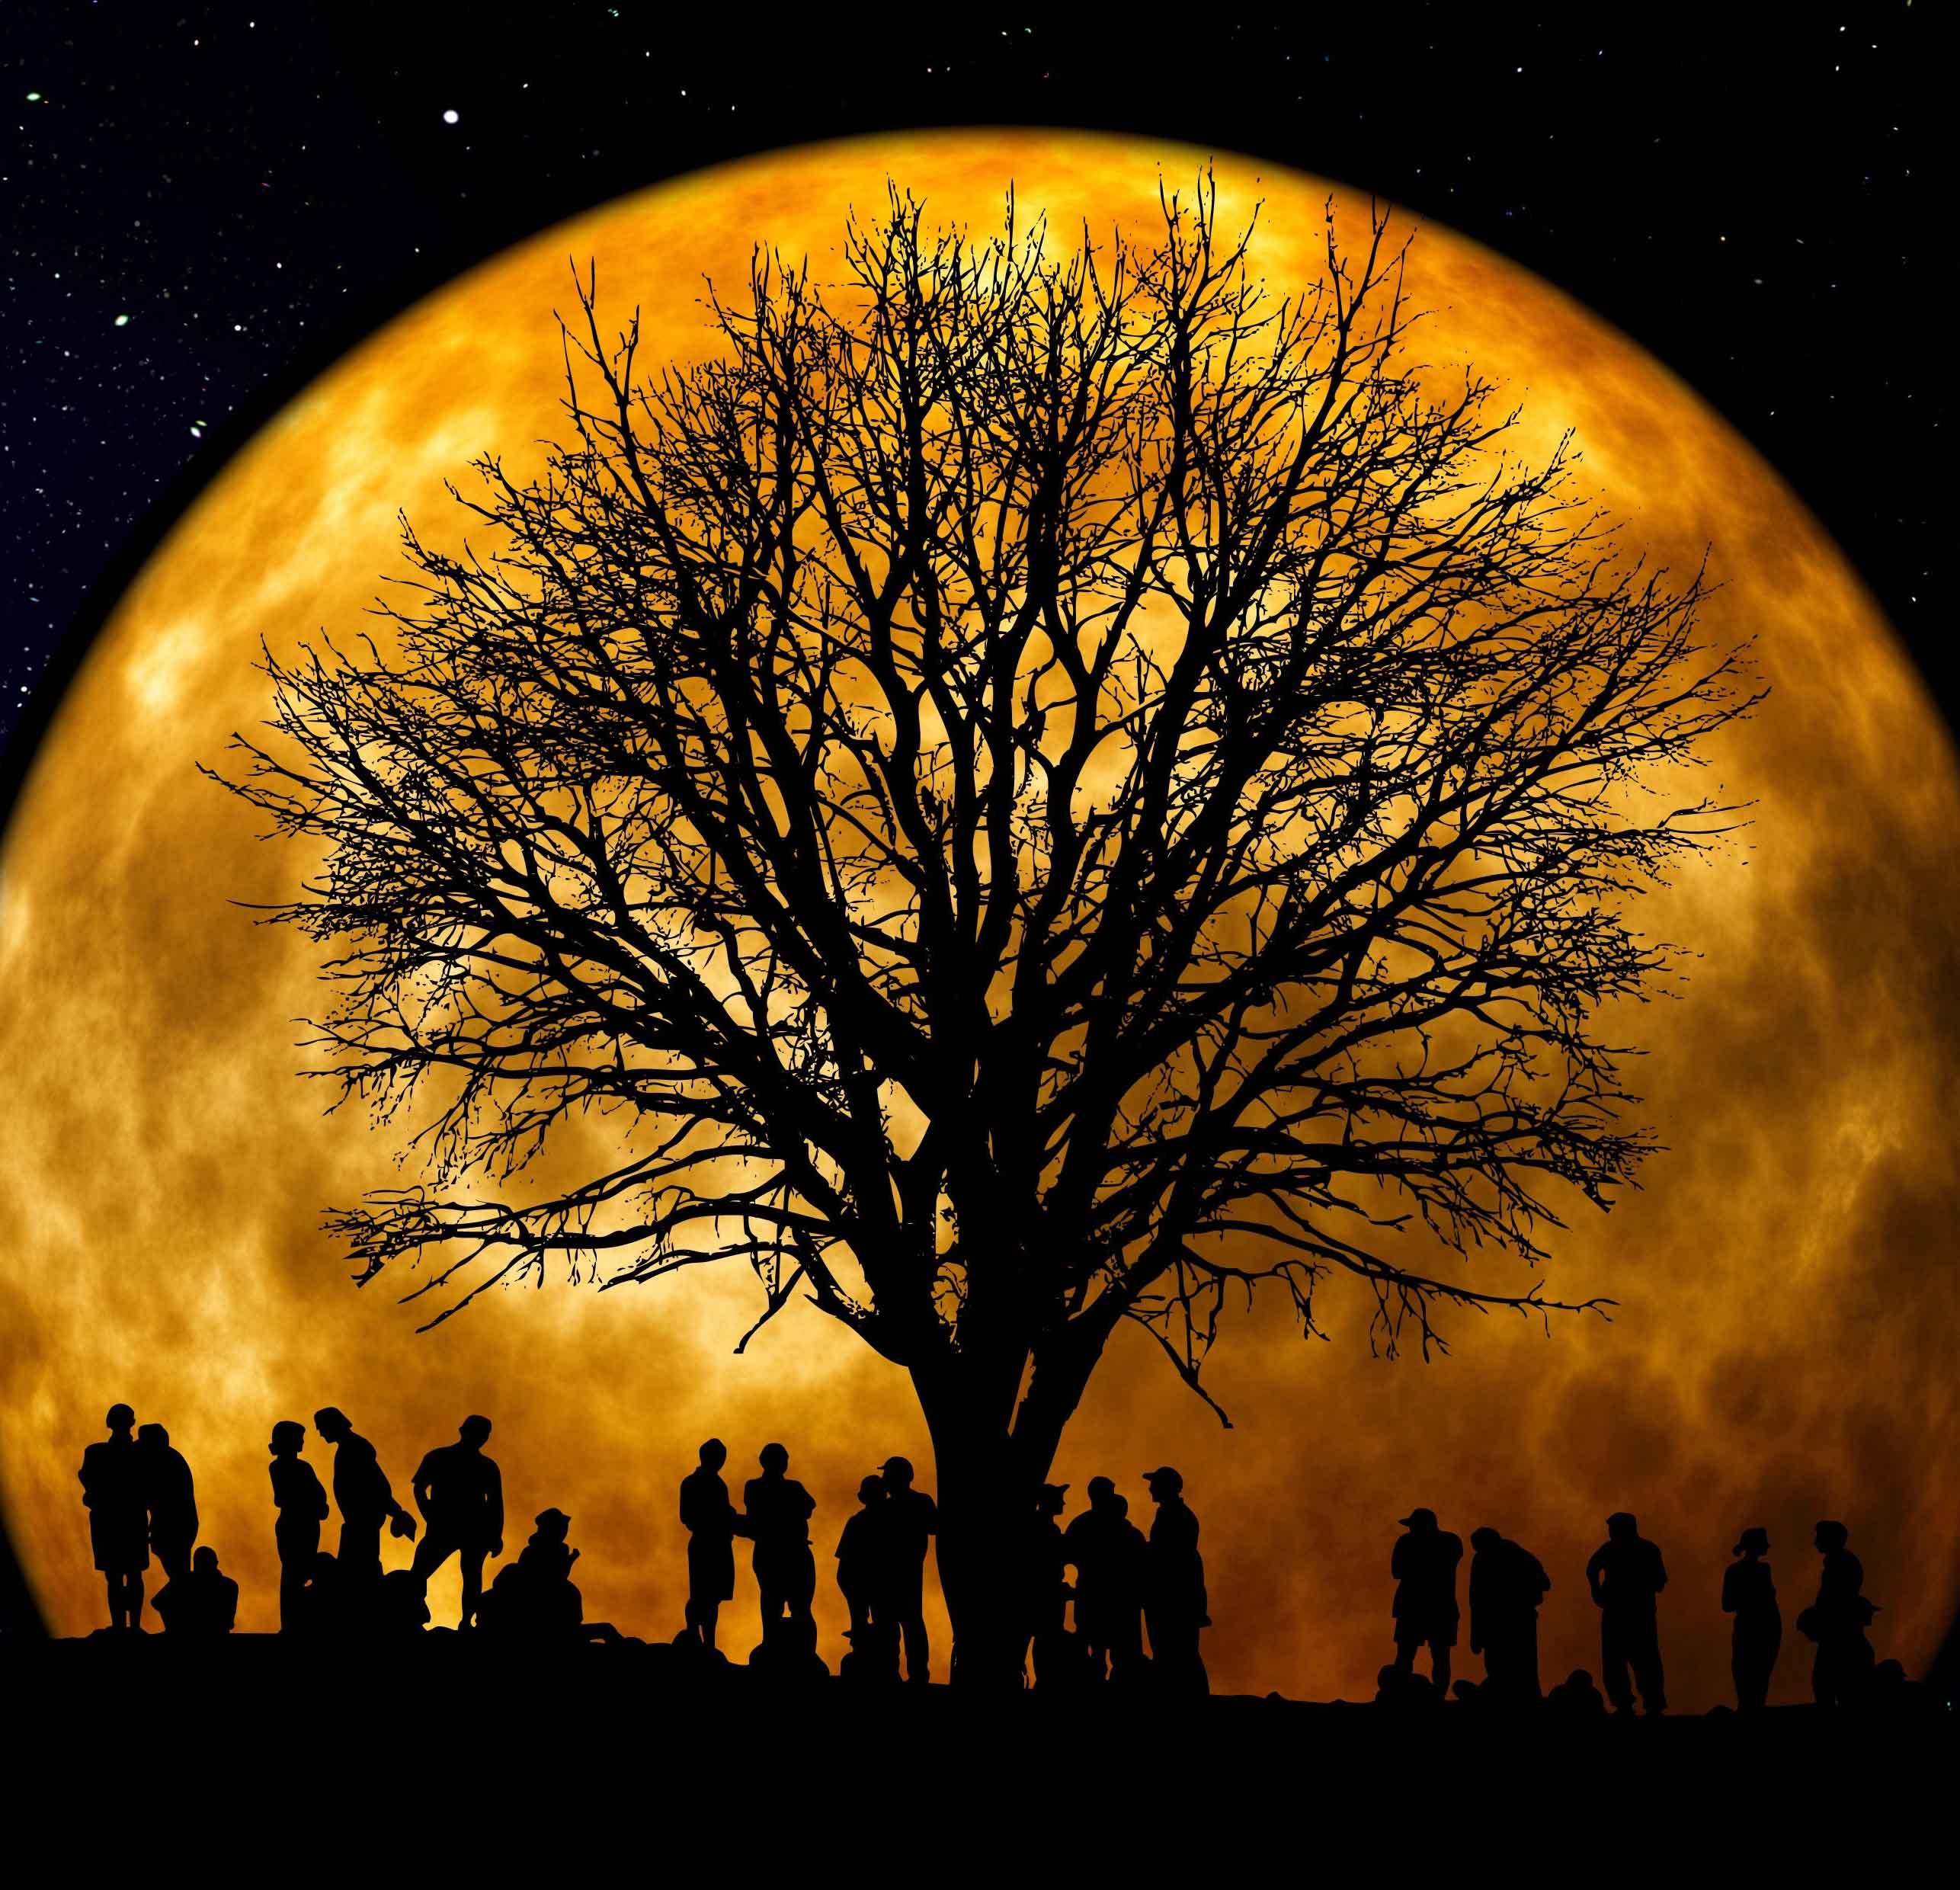 A group of people standing around a bare tree with the full moon behind